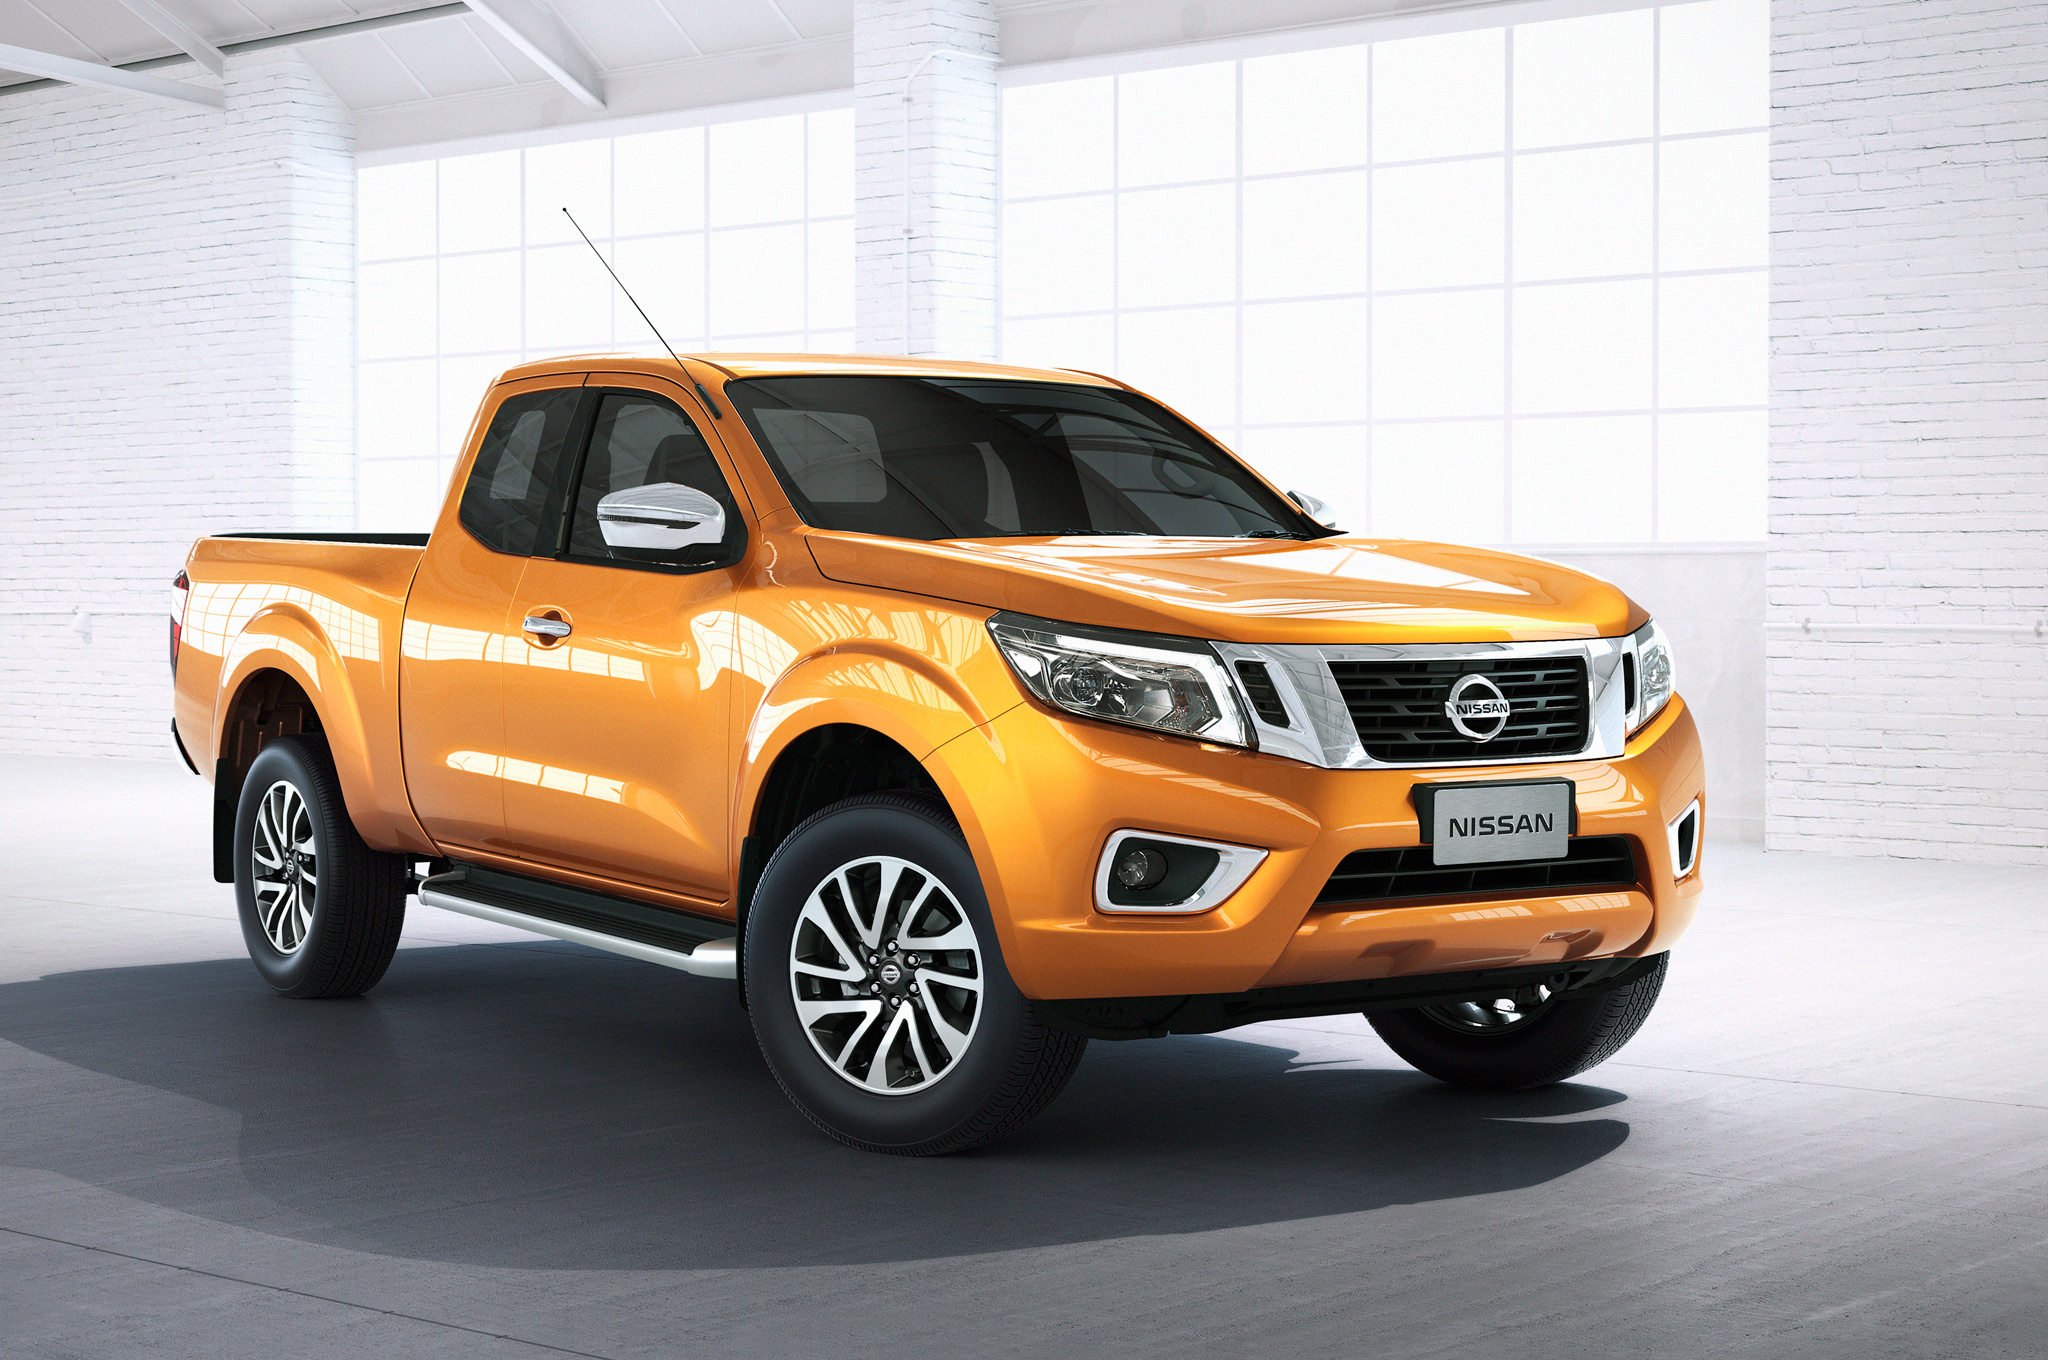 Nissan Np300 Navara 12th Gen Front Side View King Cab